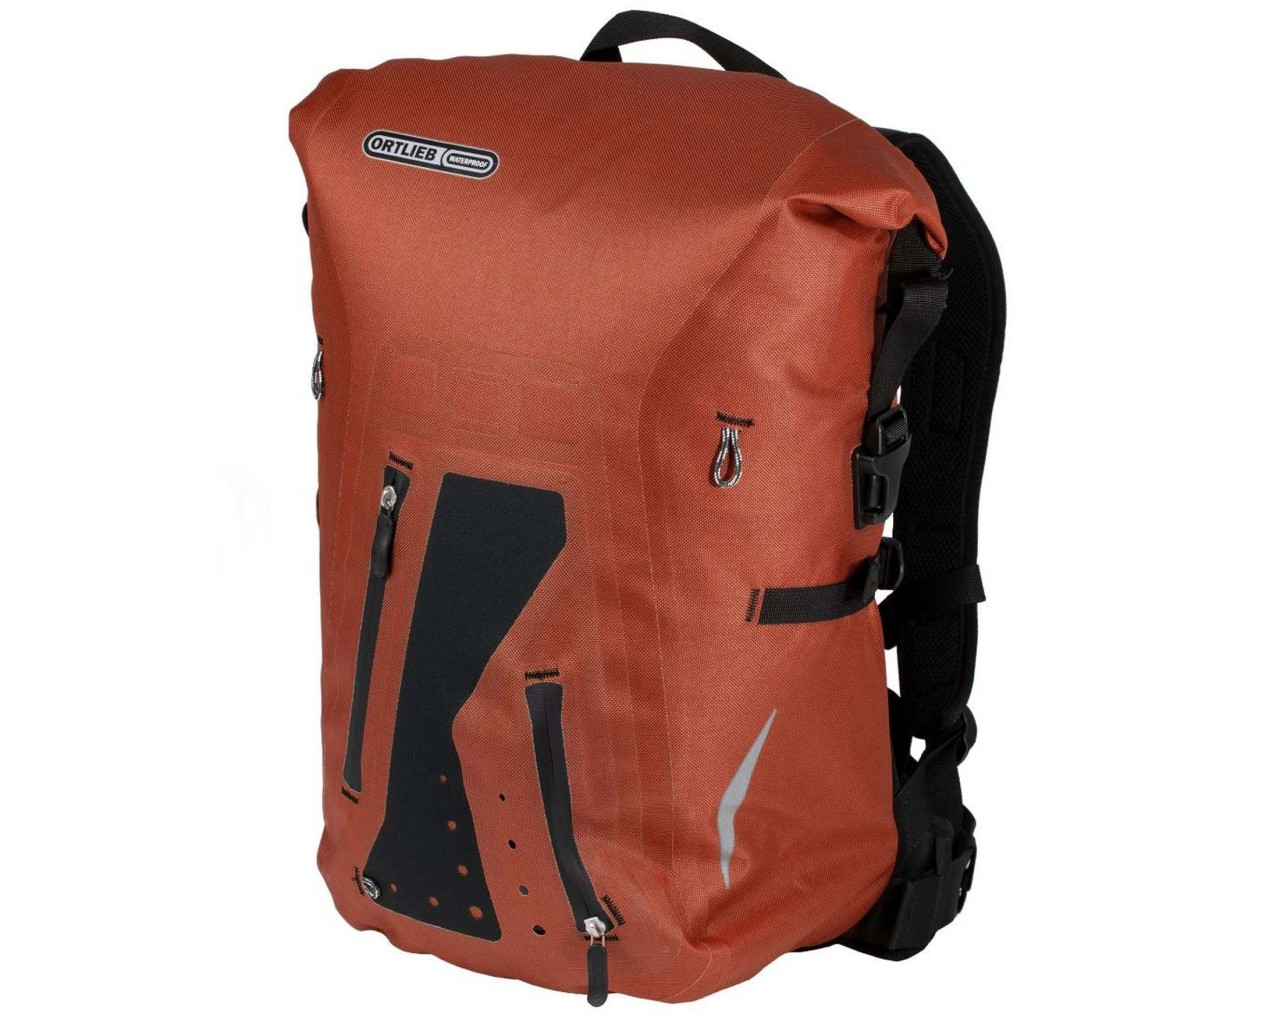 Ortlieb Packman Pro TWO 25 litres waterproof backpack PVC-free | rooibos